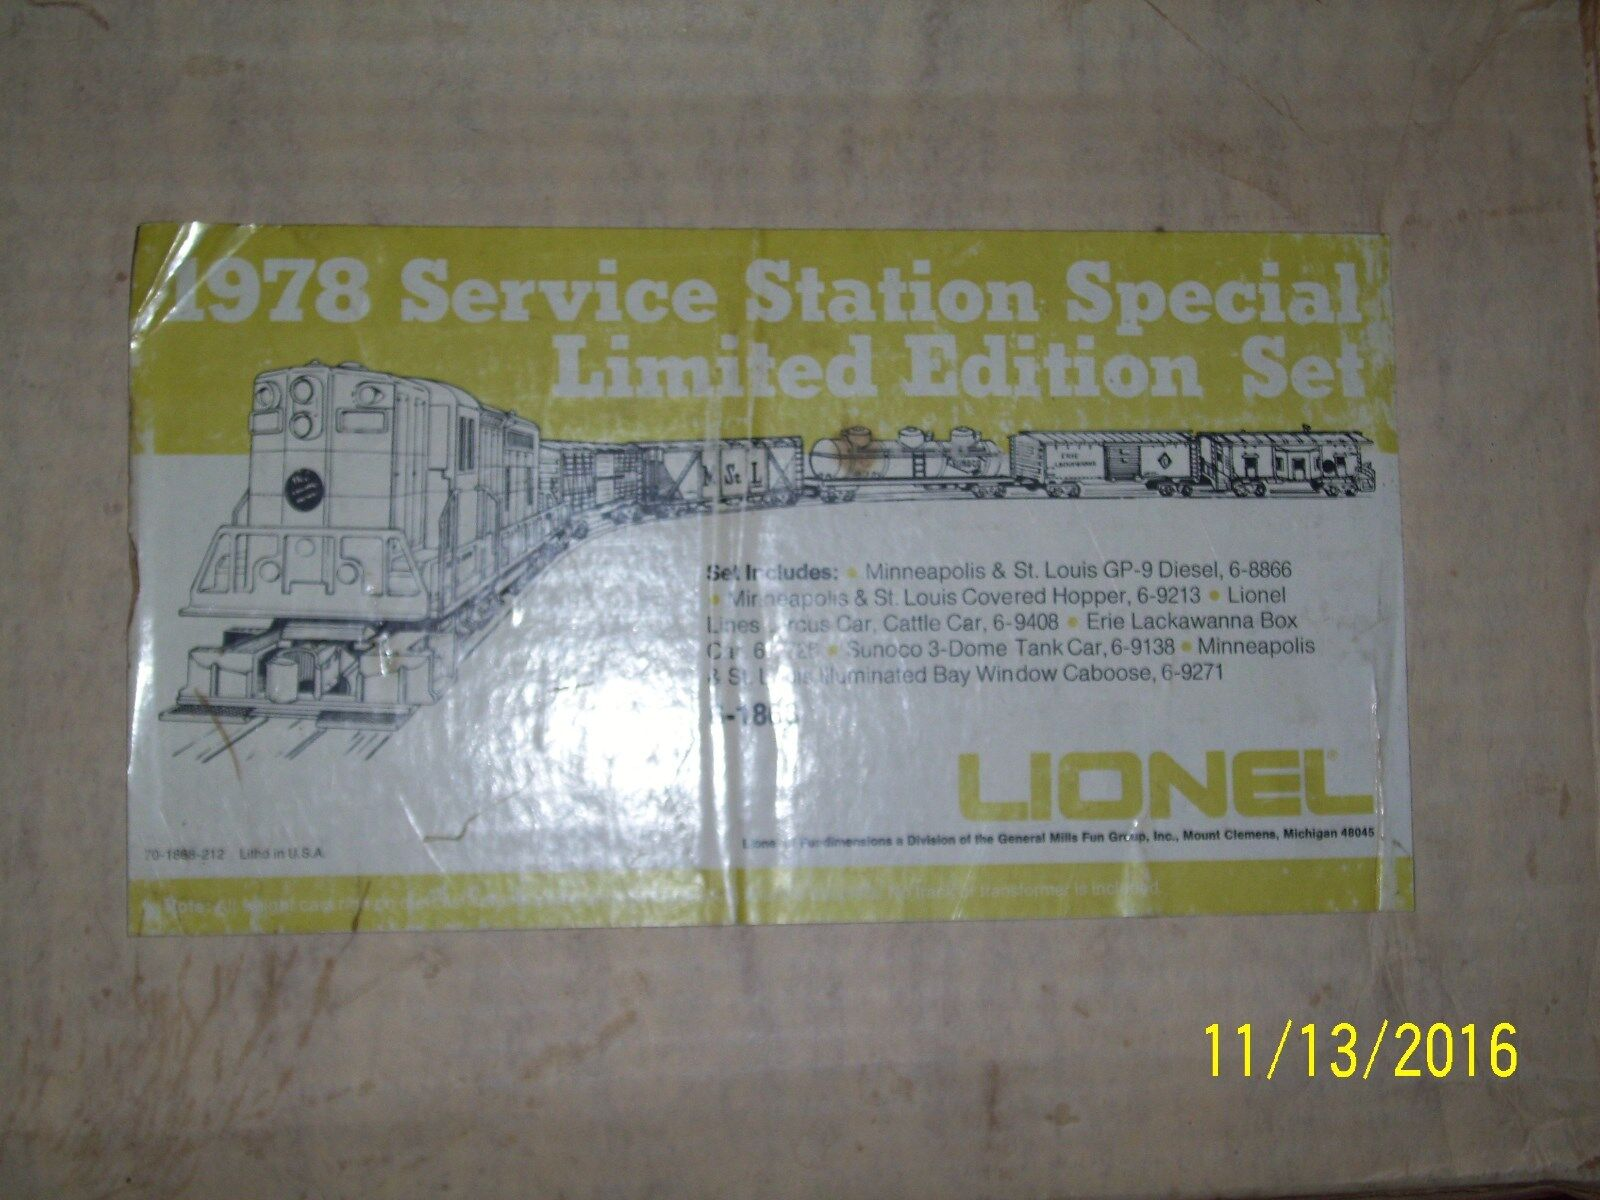 LIONEL 6-1868 1978 SERVICE STATION SPECIAL LIMITED EDITION SET